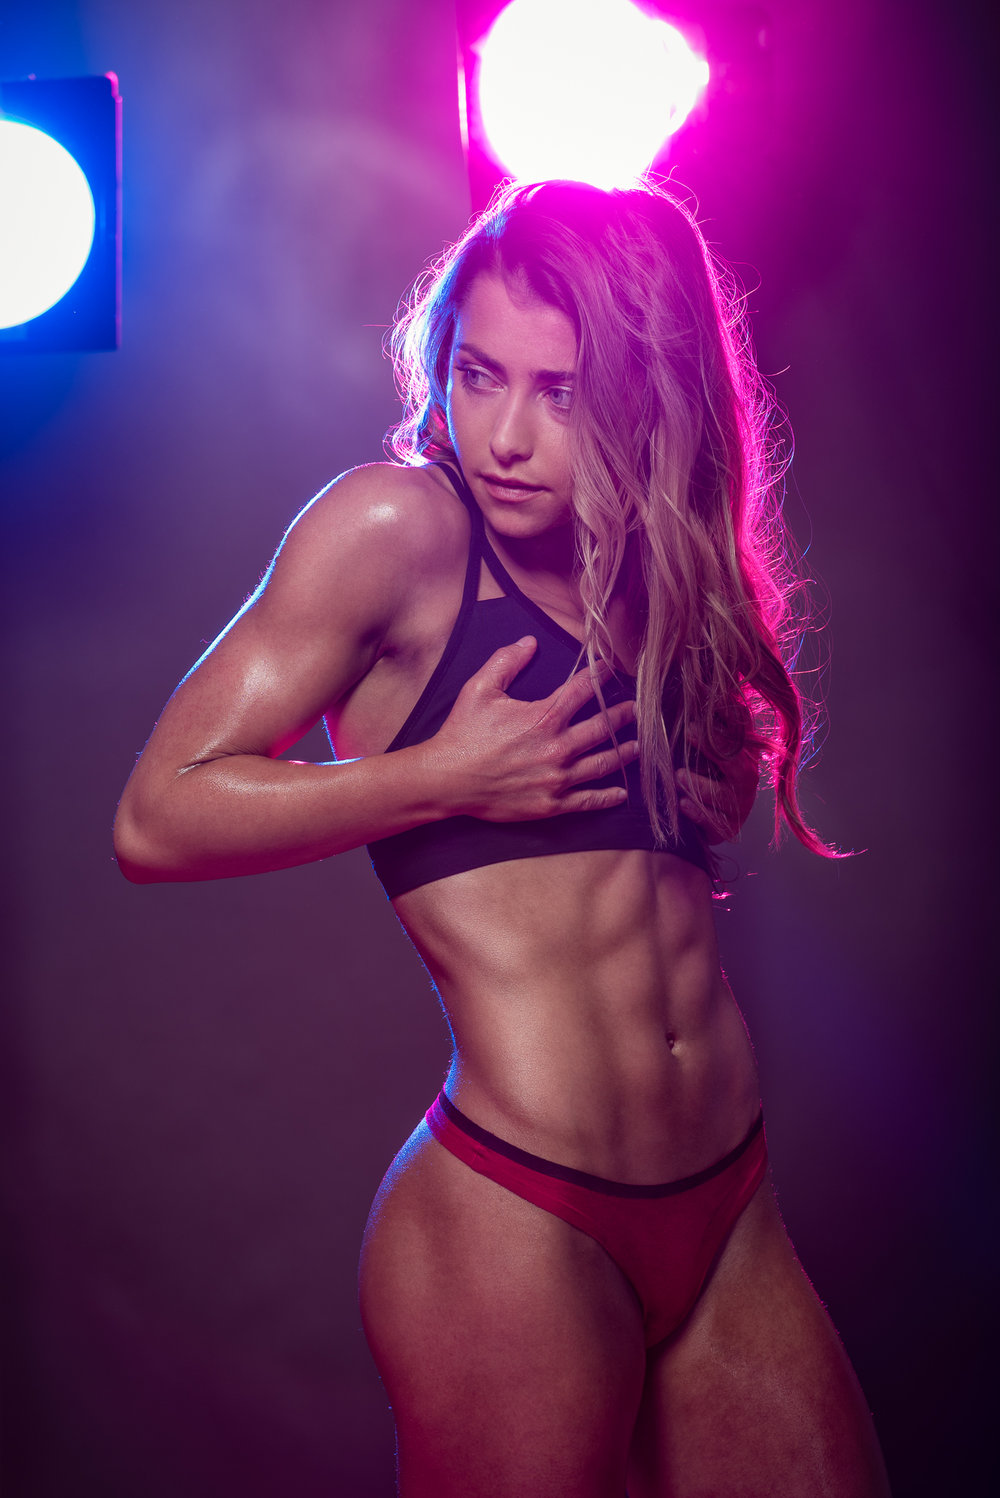 Hamilton Fitness Photographer - Studio Photoshoot abs 001.JPG